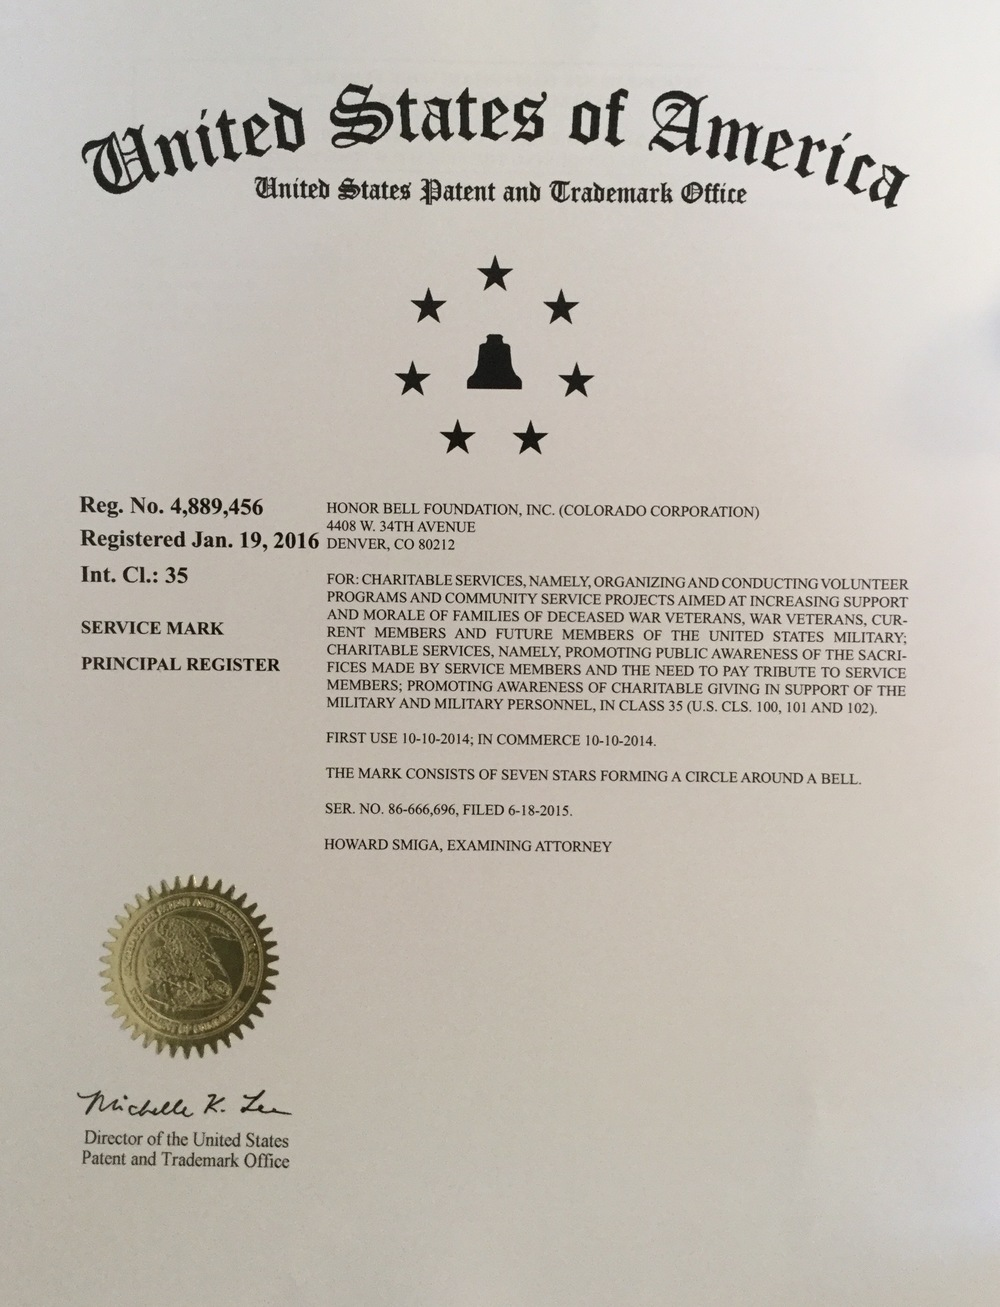 Our trademark registration letter.